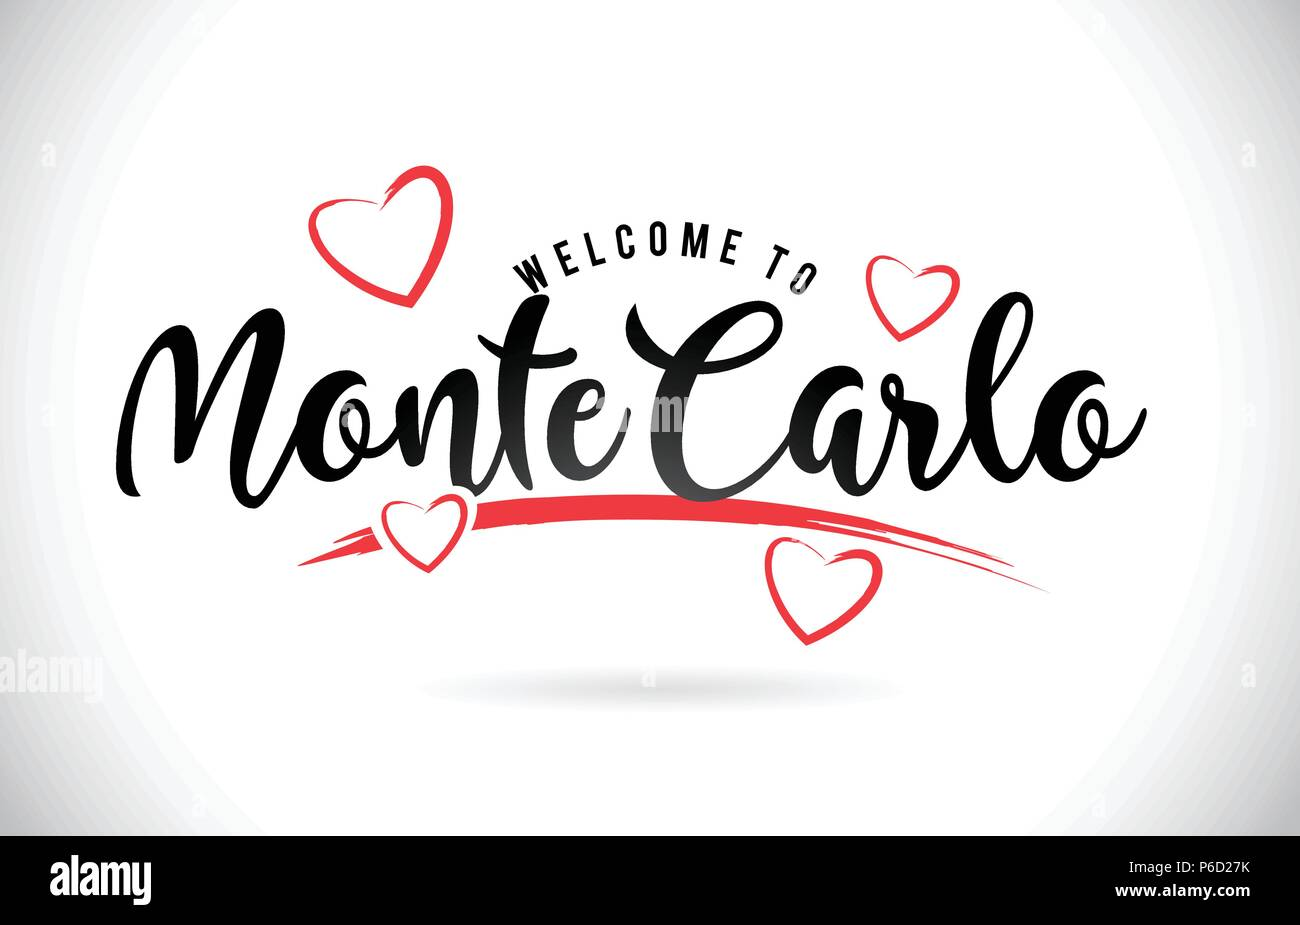 MonteCarlo Welcome To Word Text with Handwritten Font and Red Love Hearts Vector Image Illustration Eps. - Stock Vector